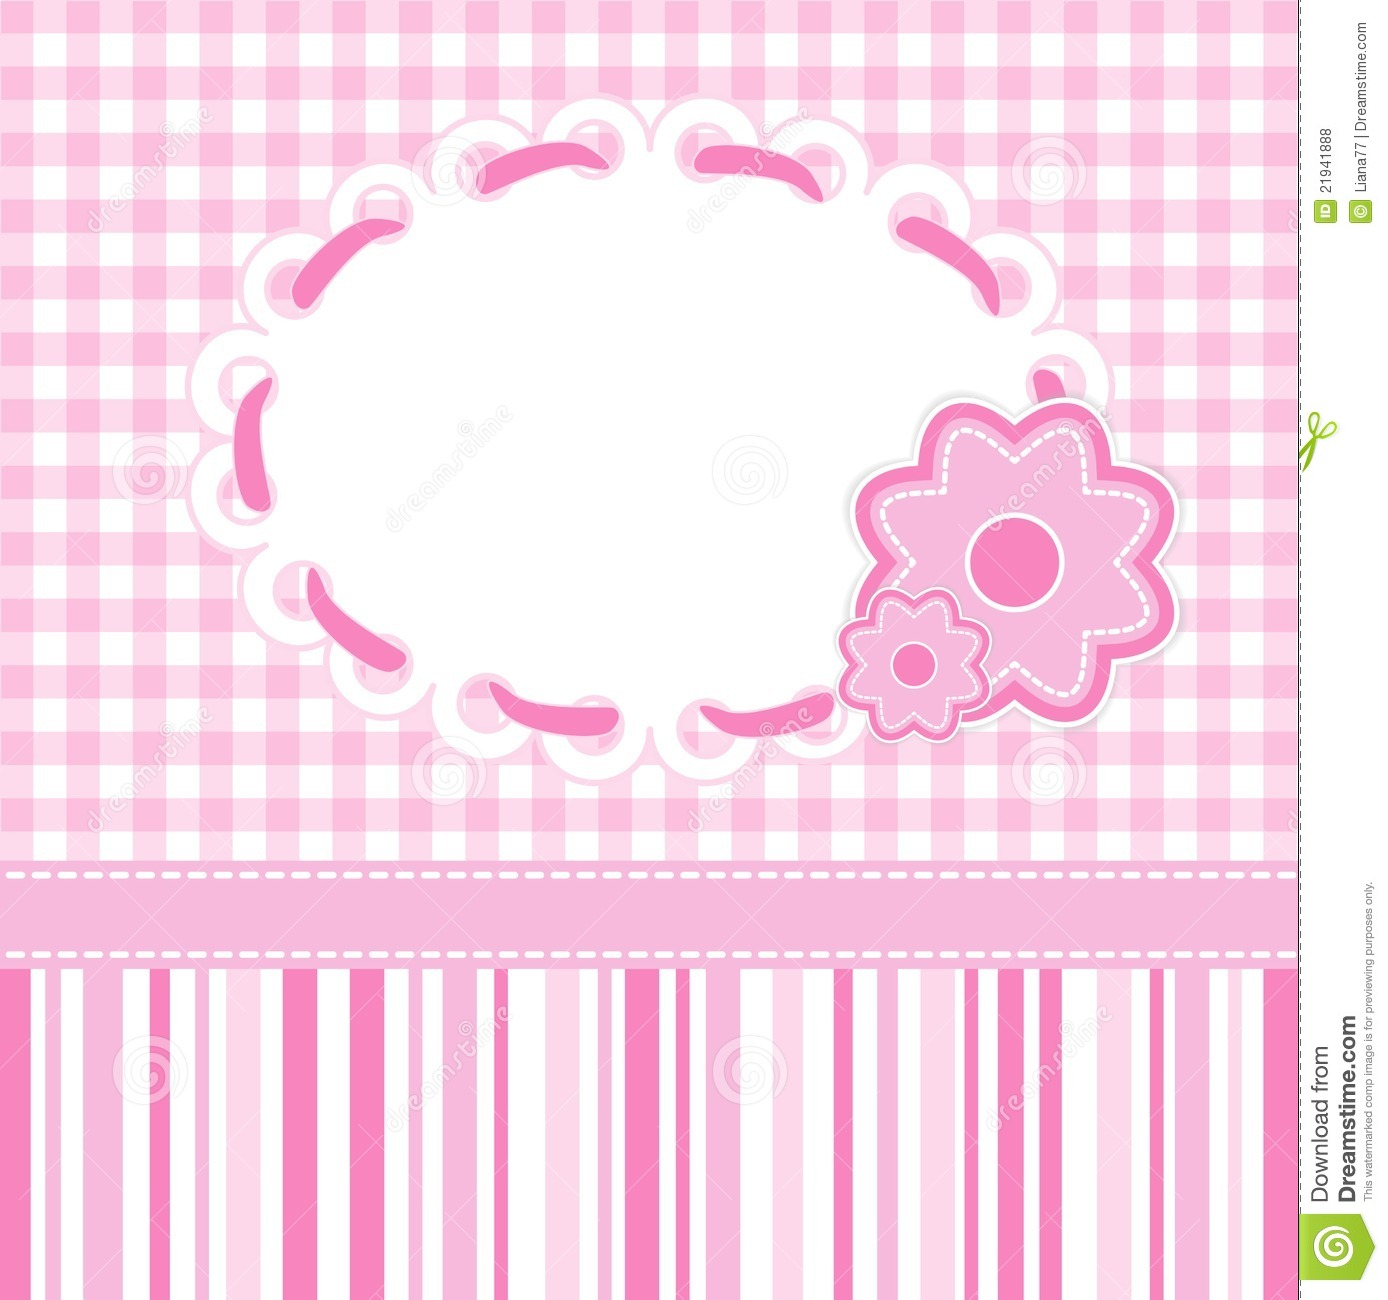 Baby Girl Card Royalty Free Stock Photos - Image: 21941888